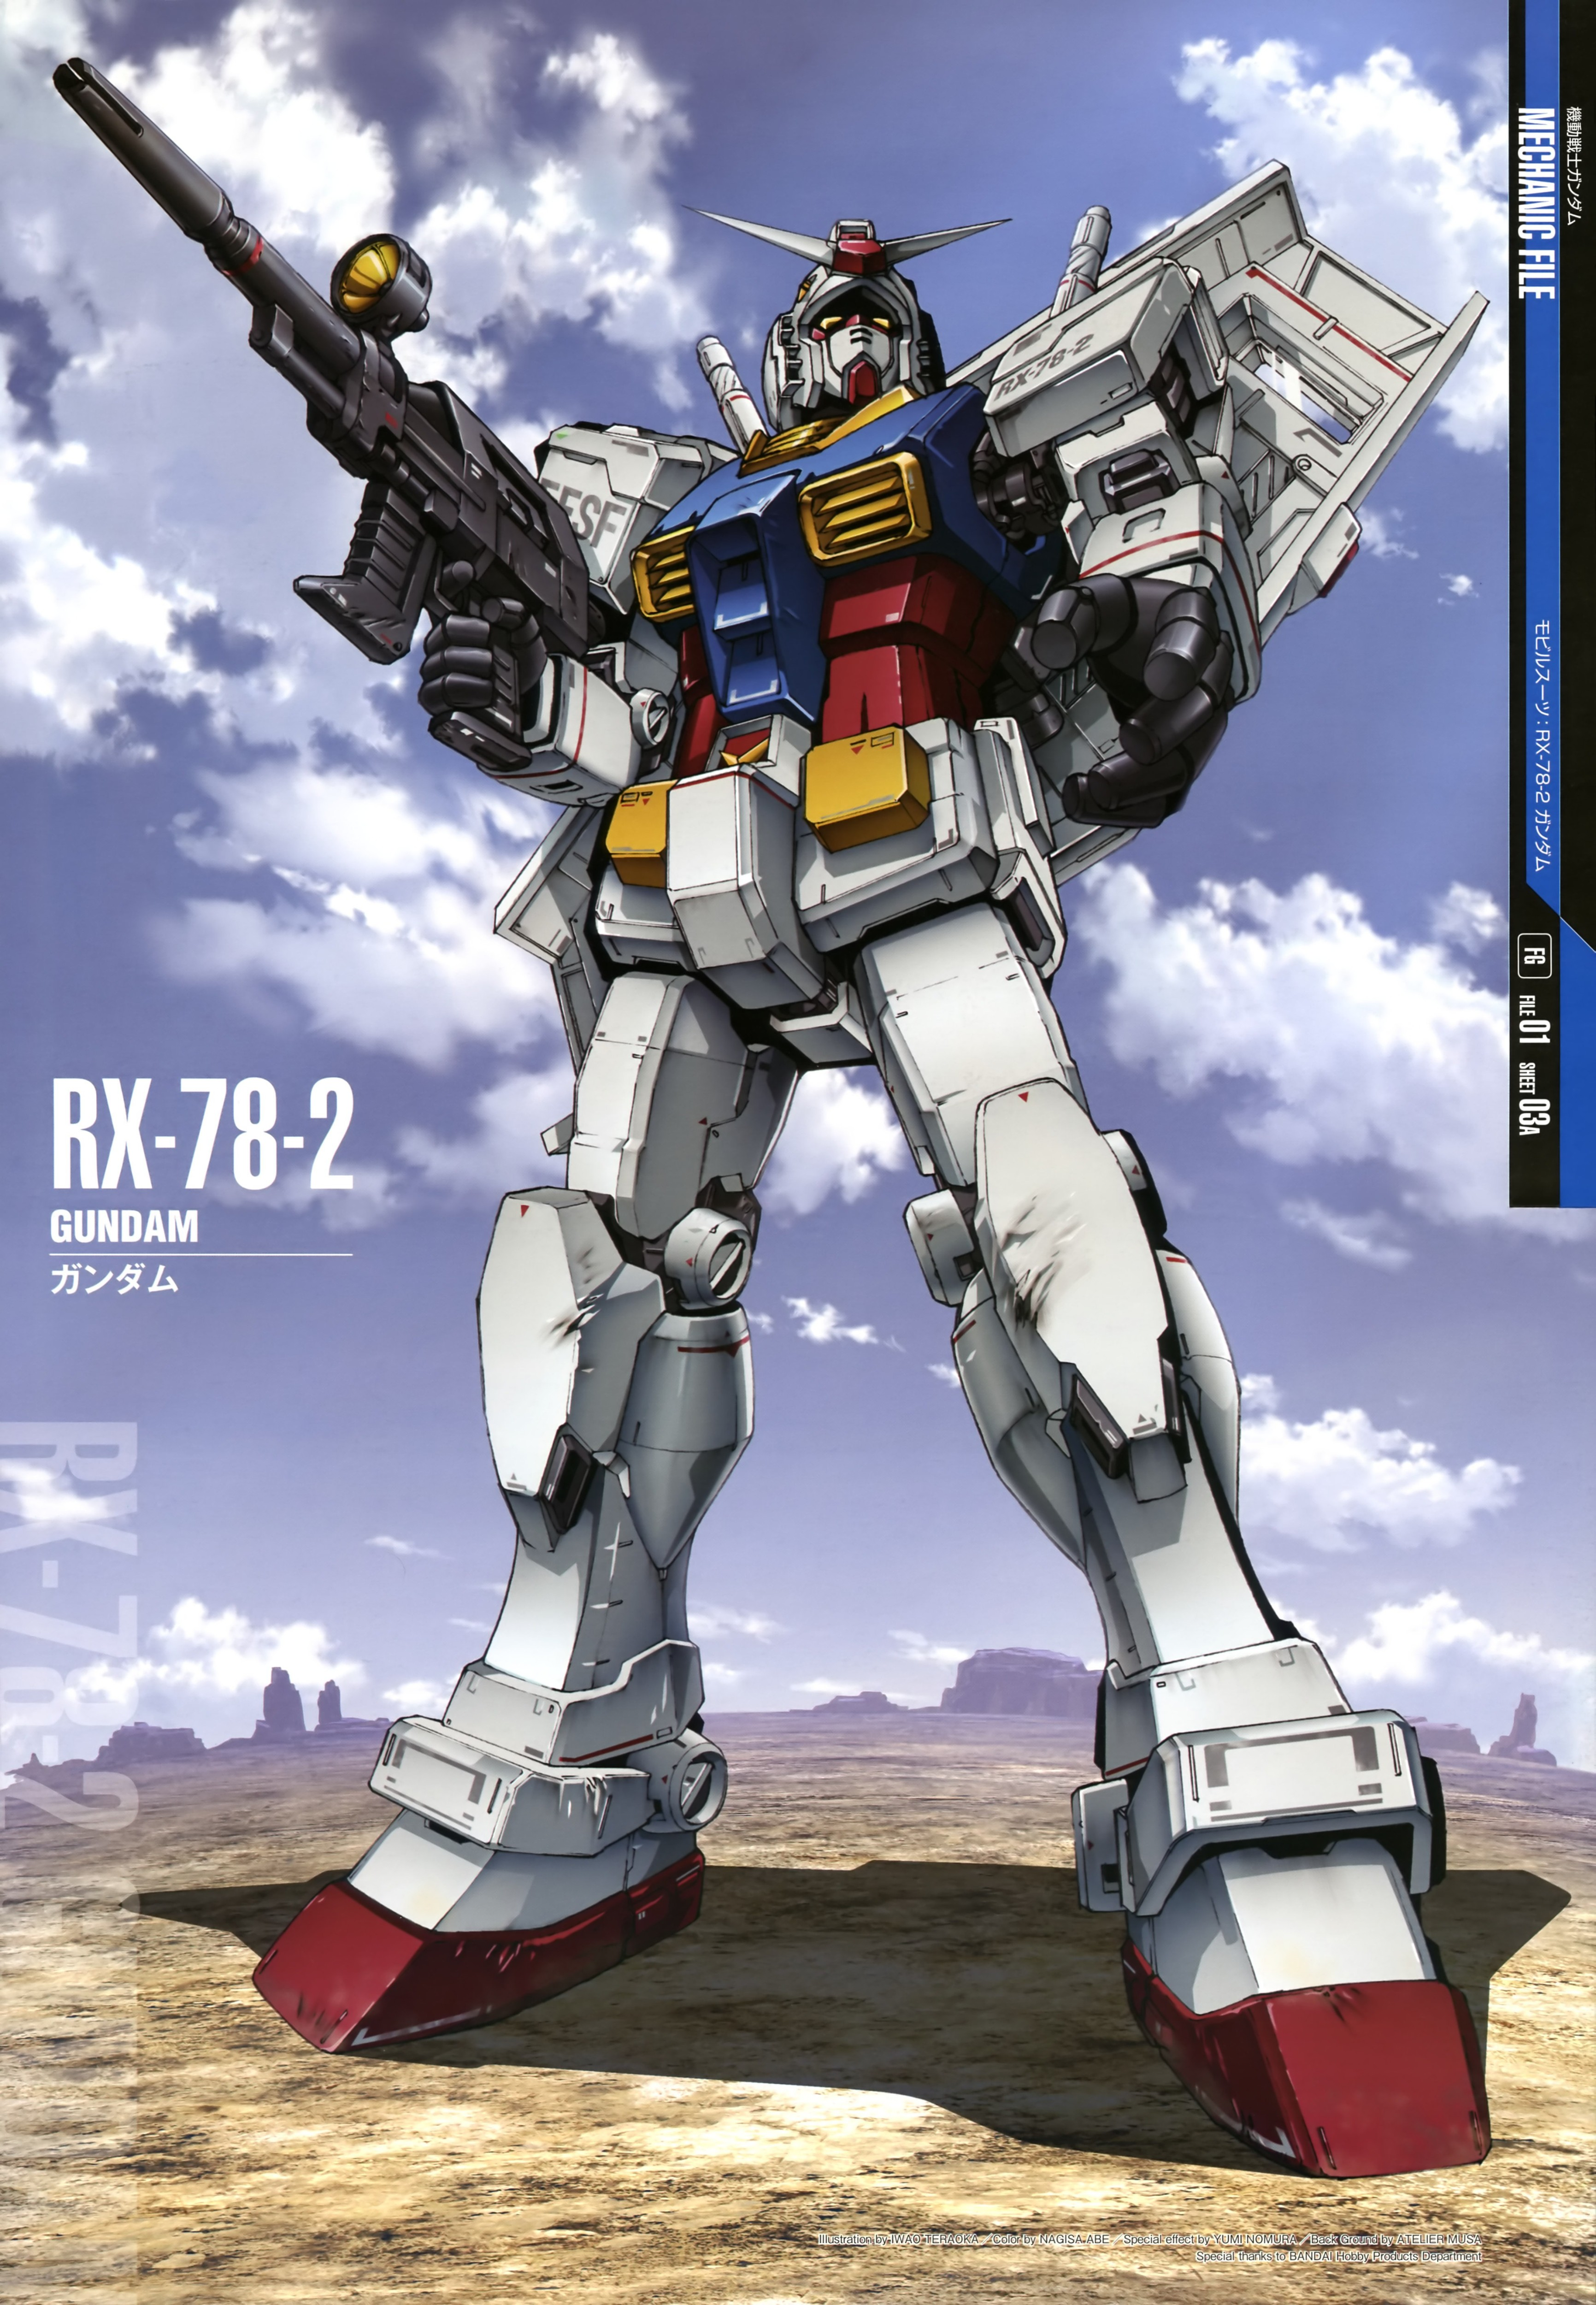 78 Images About Temperance On Pinterest: [WXY]RX-78-2 5cm Gundam 3x Resize